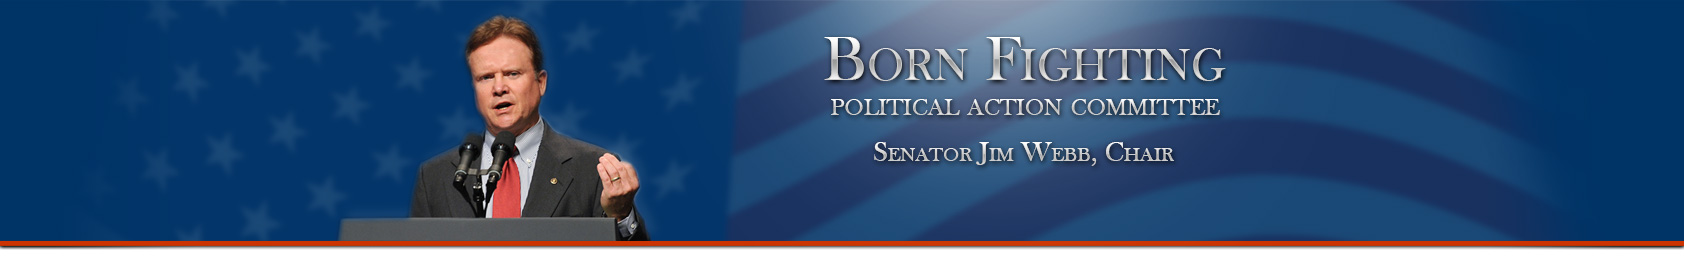 Born Fighting Political Action Committee, Senator Jim Webb, Chair